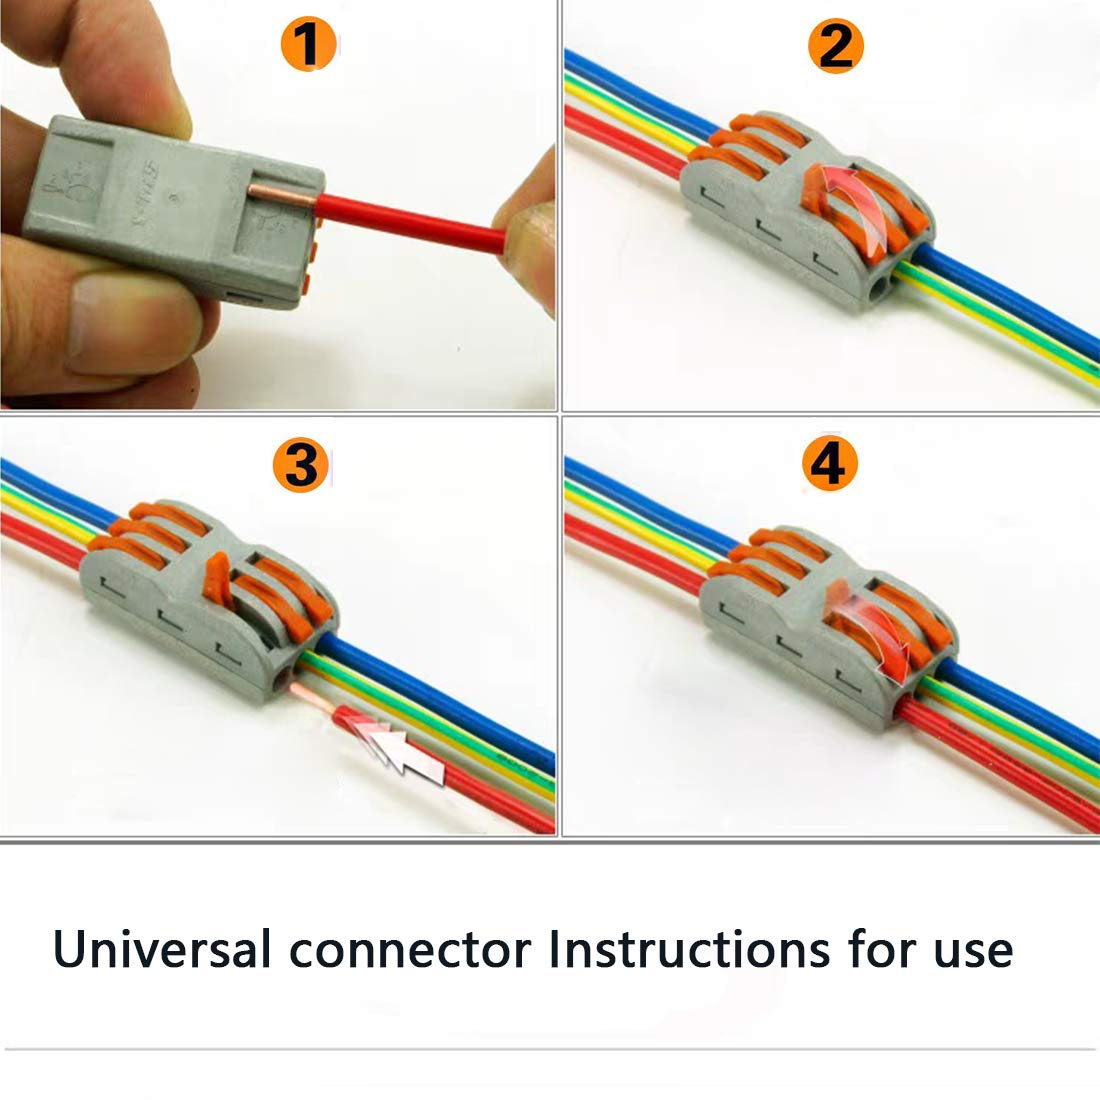 Lever-Nut,Wire Connector,Assortment Pack Conductor Compact Wire Connectors.(SPL-2,35PCS SPL-3, 35PCS)70PCS by UOHGDPY (Image #6)